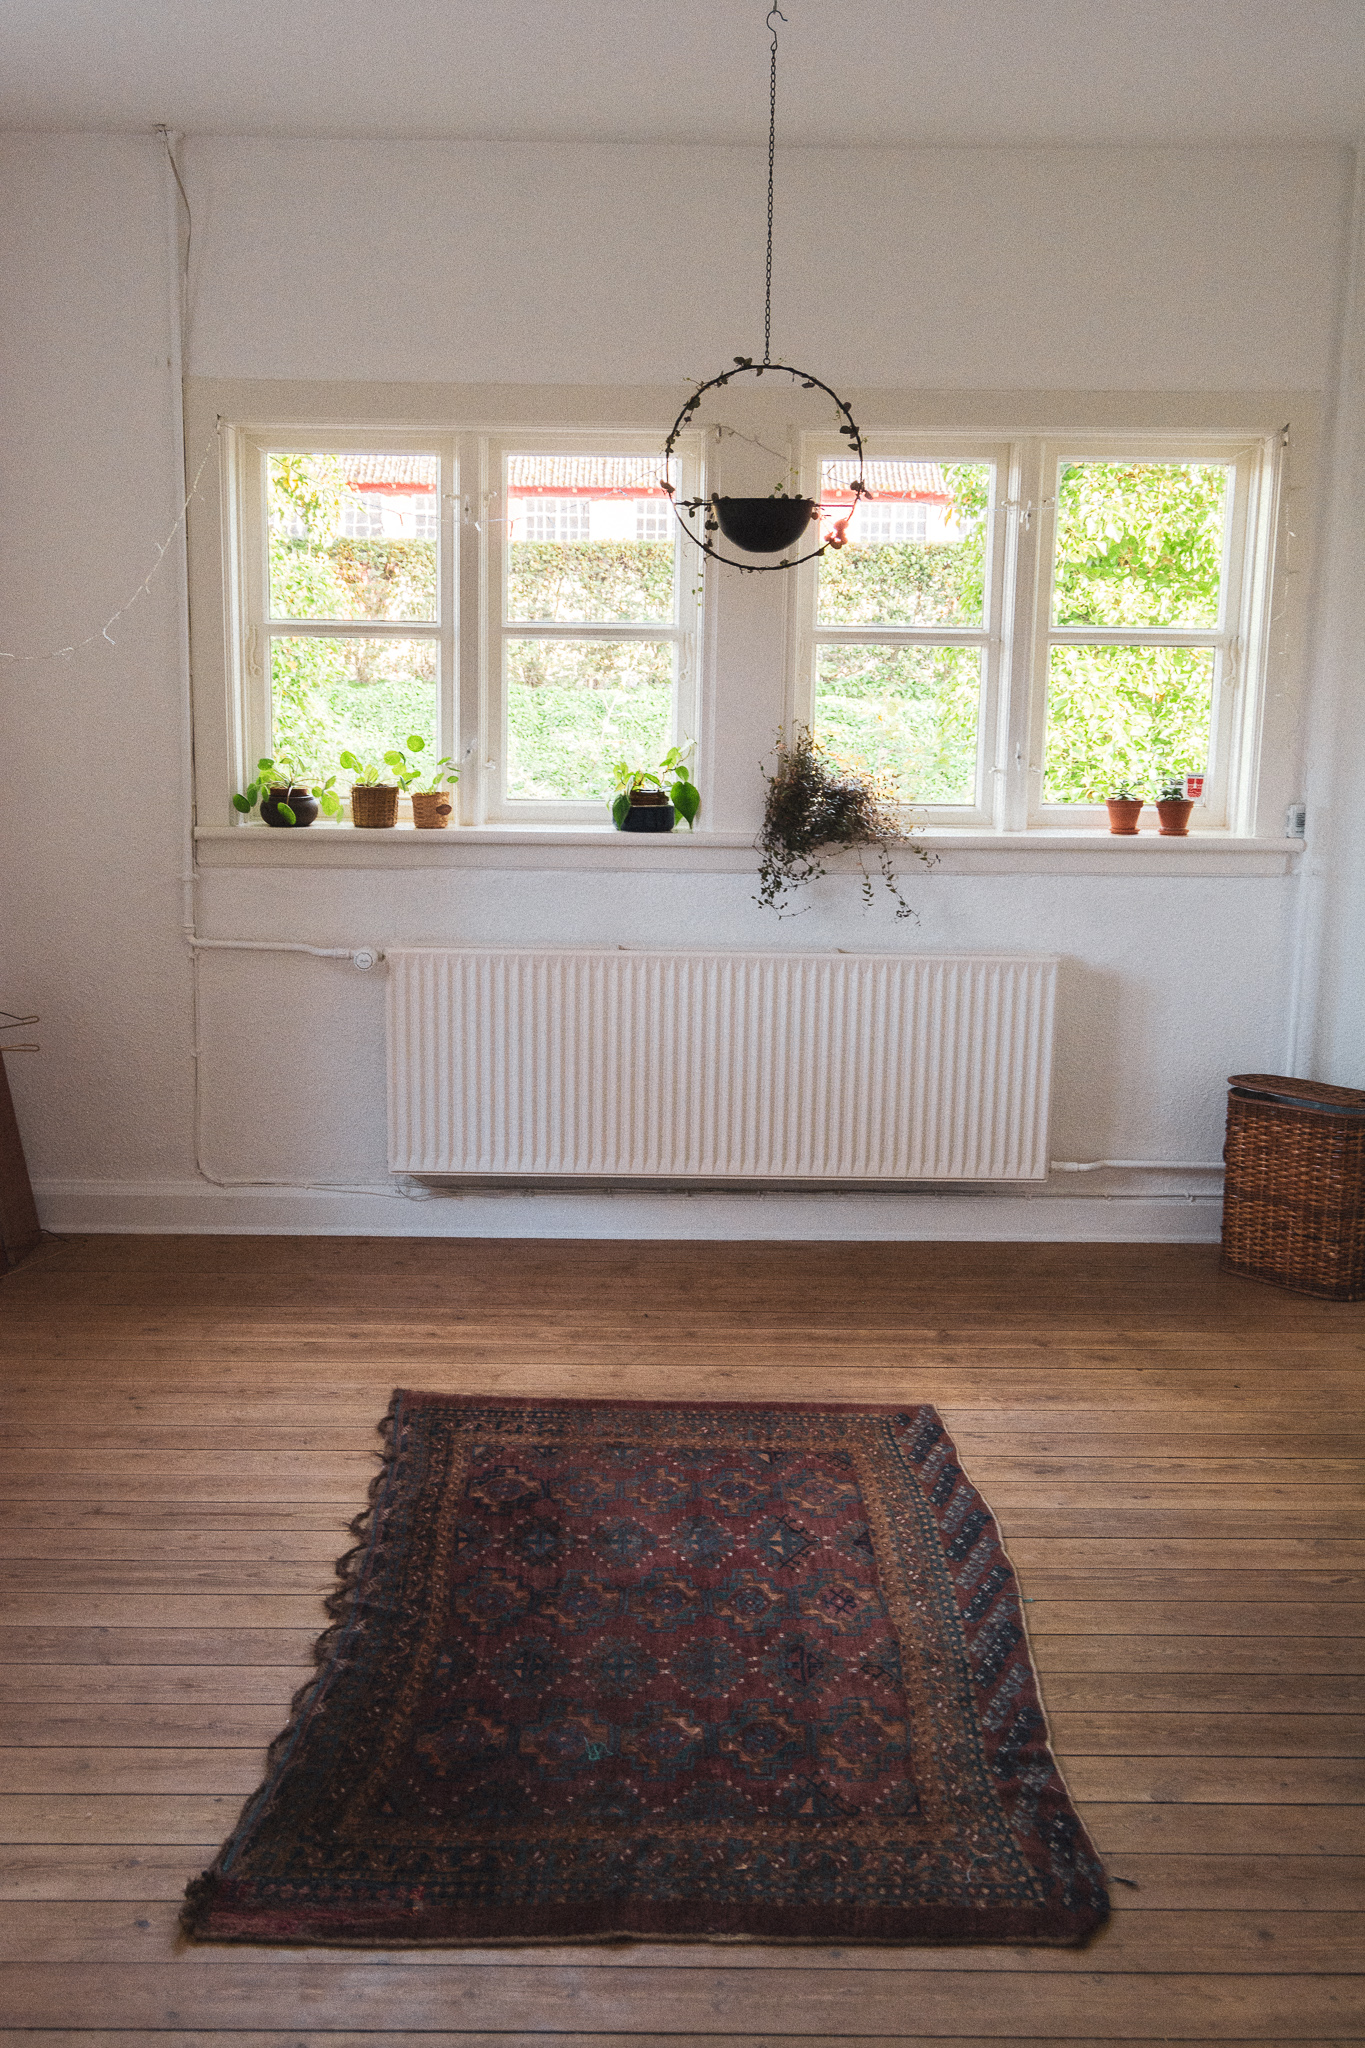 empty livingroom, carpet, tom stue, persisk tæppe, window, vindue, hanging plant, hængeplante, stories by holst